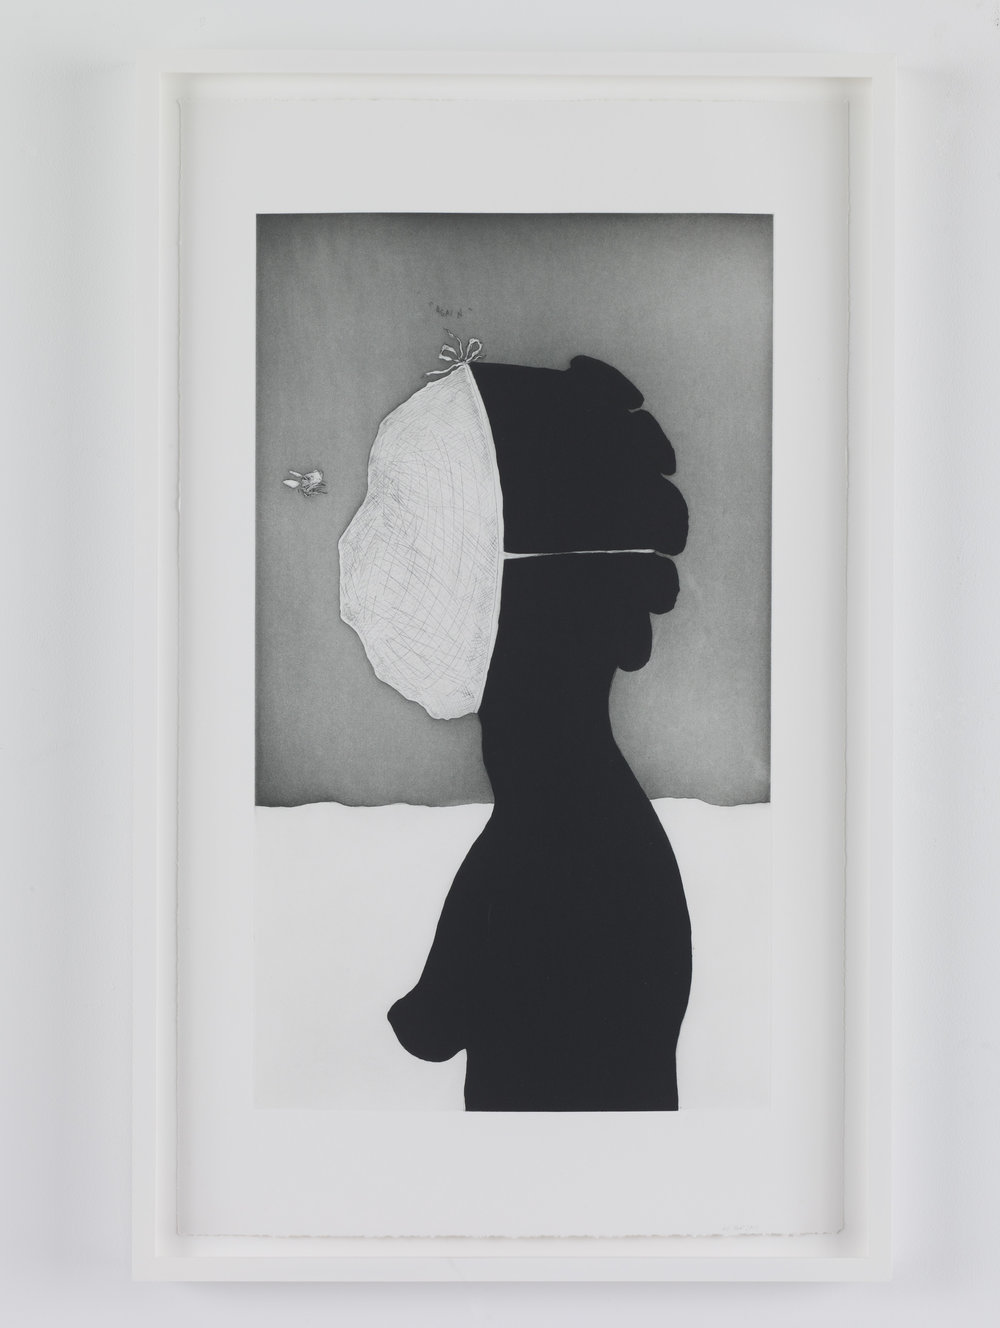 Kara Walker,  savant  from  An Unpeopled Land in Uncharted Waters , 2010. One from a suite of 6 etchings with aquatint, sugar-lift, spit-bite and dry-point. 27 x 17 inches (68.6 x 43.2 cm). © Kara Walker, courtesy of Sikkema Jenkins & Co., New York.